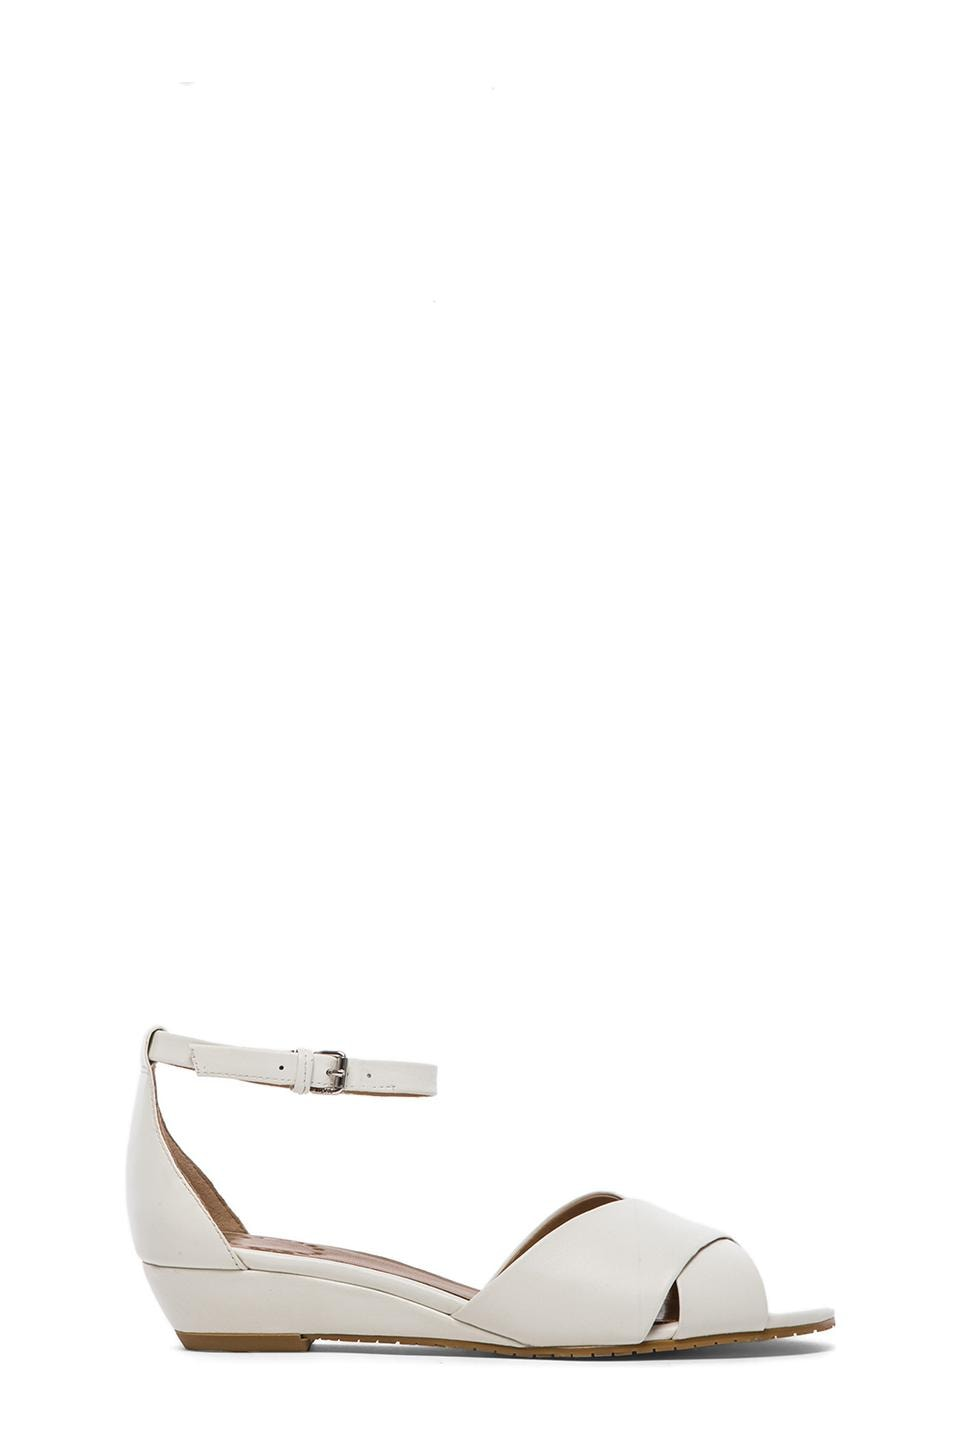 Marc by Marc Jacobs Simplicity Demi Wedge in White